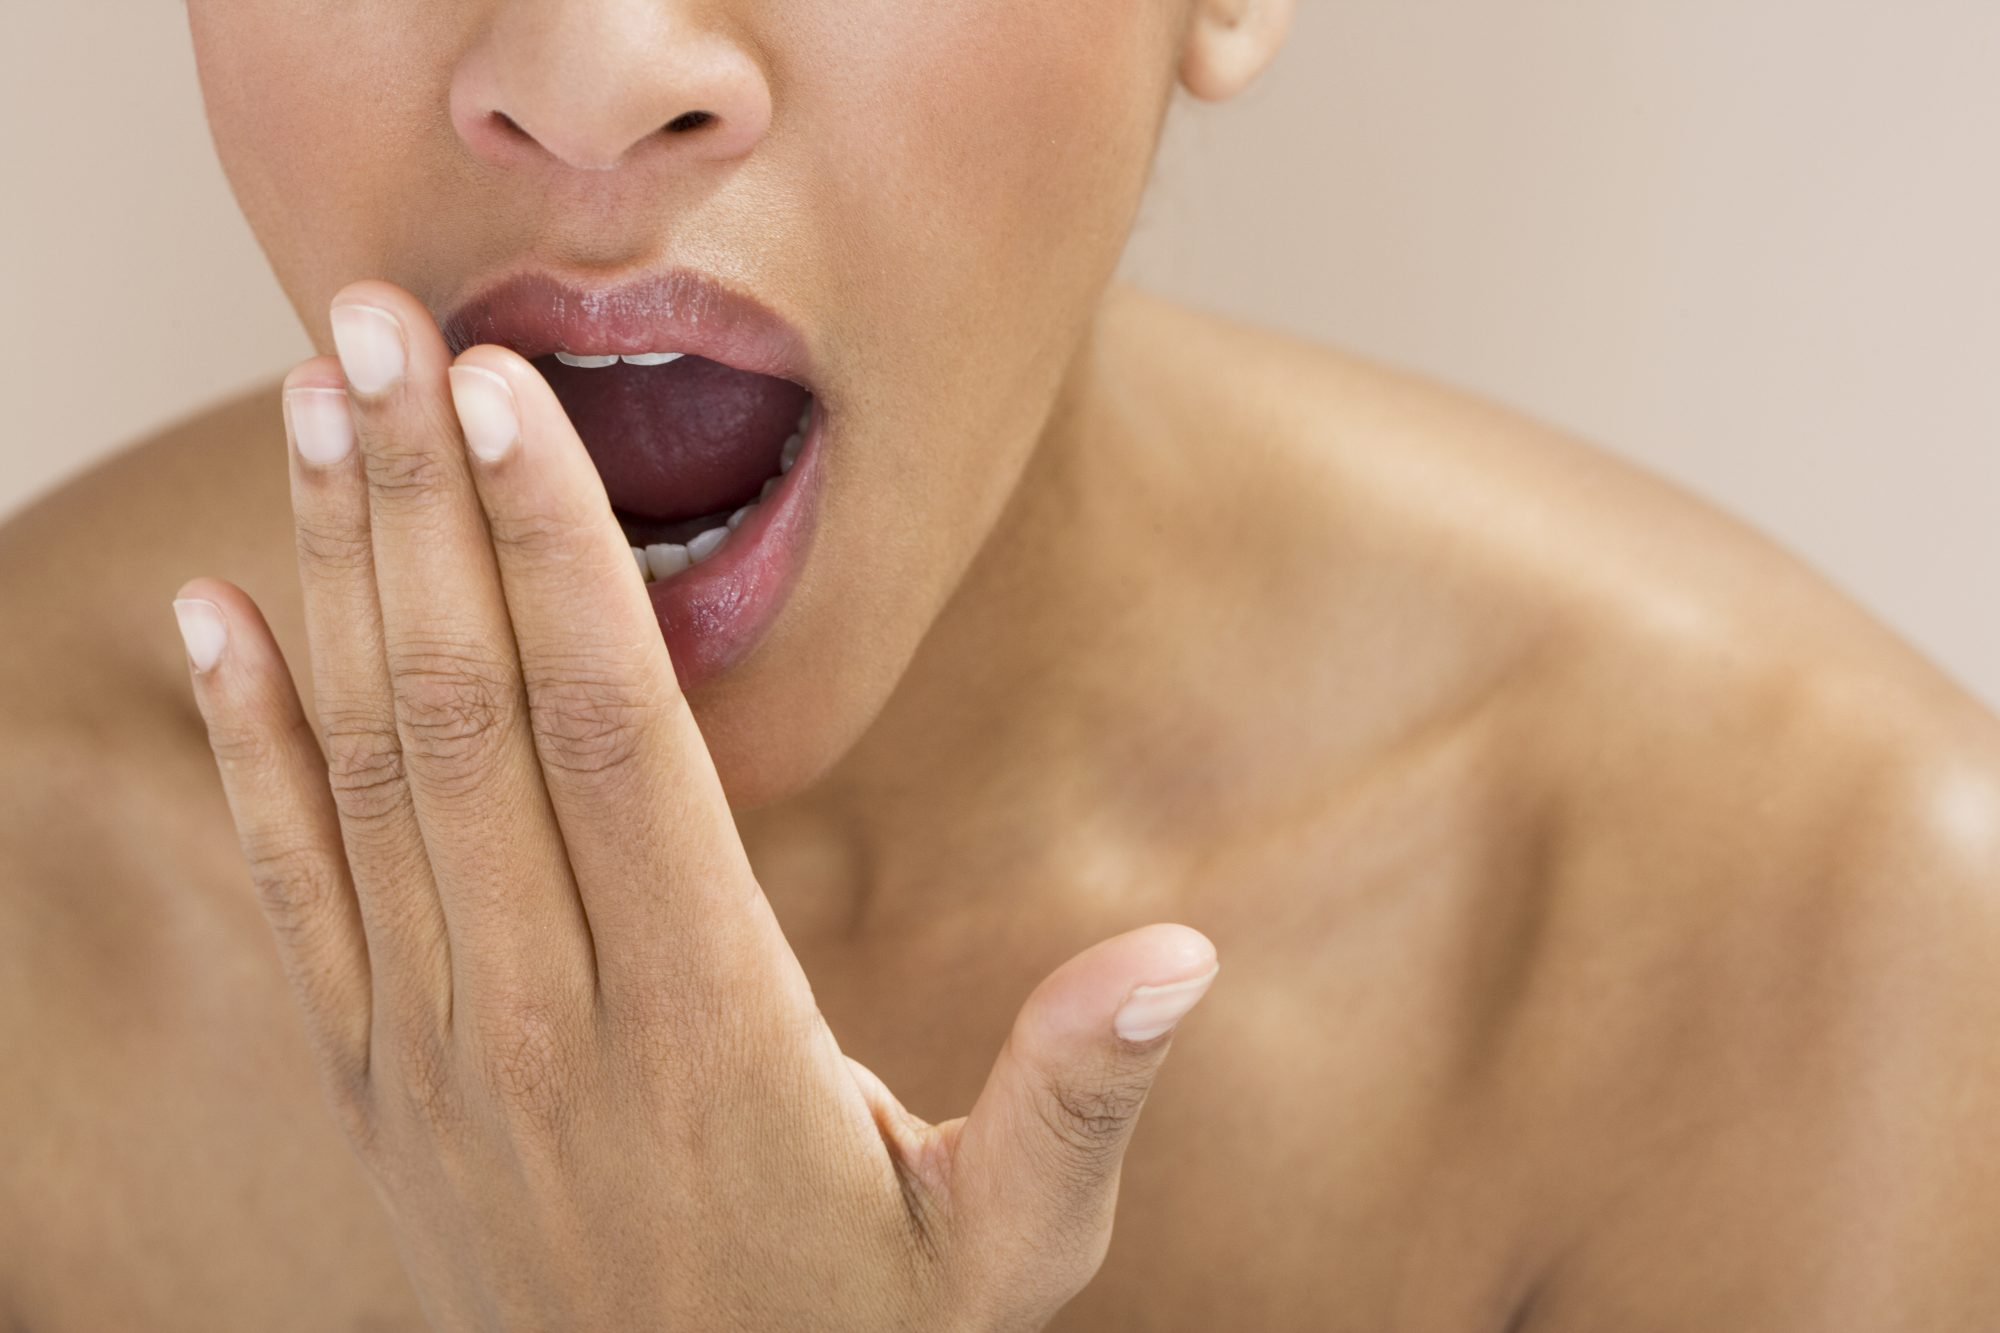 4 Things Your Mouth Can Tell You About Your Health